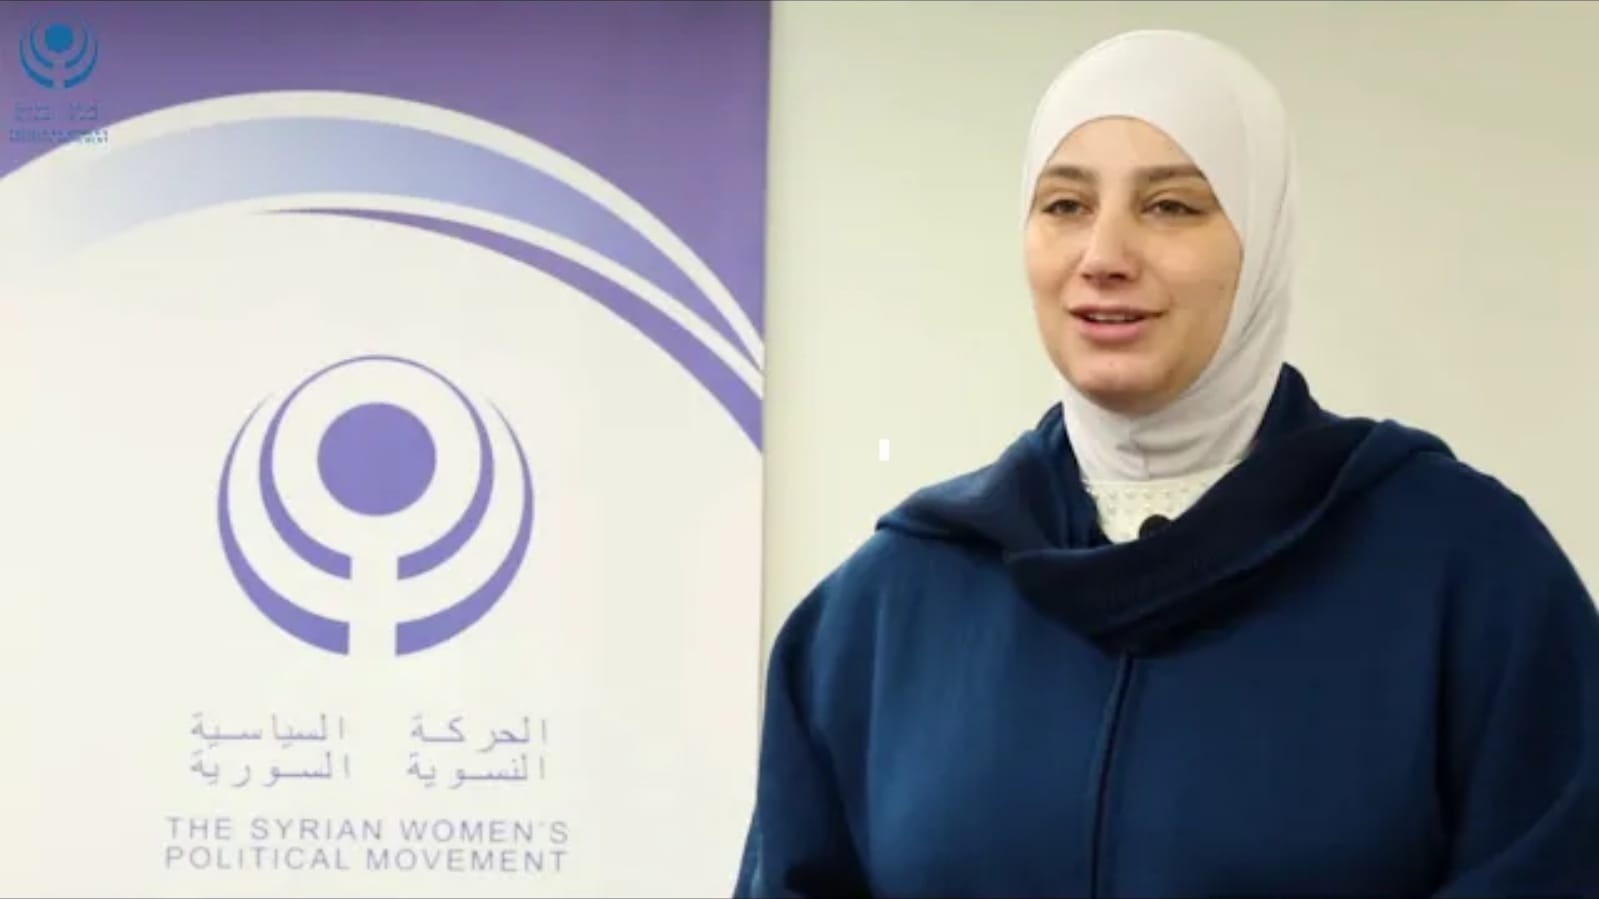 Majd Sharbajy The Syrian Women's Political Movement  Member